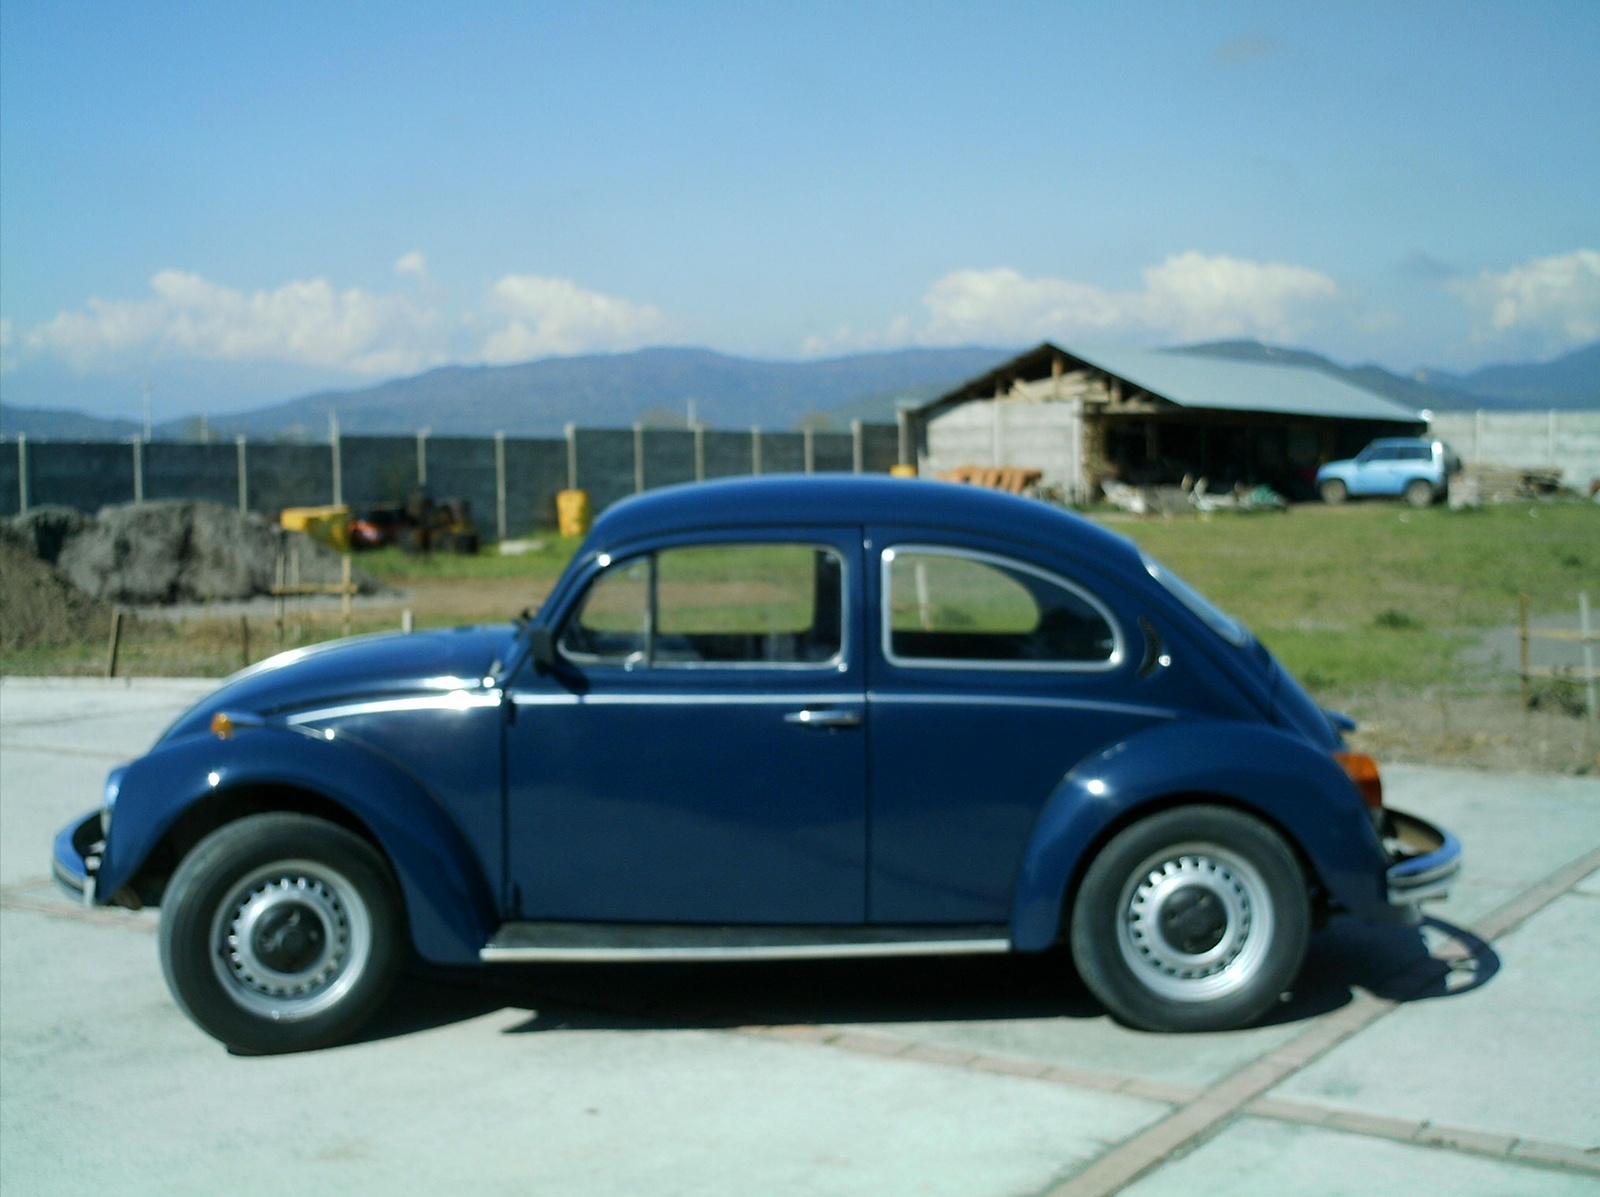 2001 volkswagen jetta models with 1979 Volkswagen Beetle Pictures C6927 Pi8808102 on 181809751266 further 1990 Volkswagen Jetta Overview C5961 furthermore 48 BODY Replacing Your Ignition Switch and Lock Cylinder further 2004 Volkswagen GTI Overview C5865 moreover B004CGMOR0.